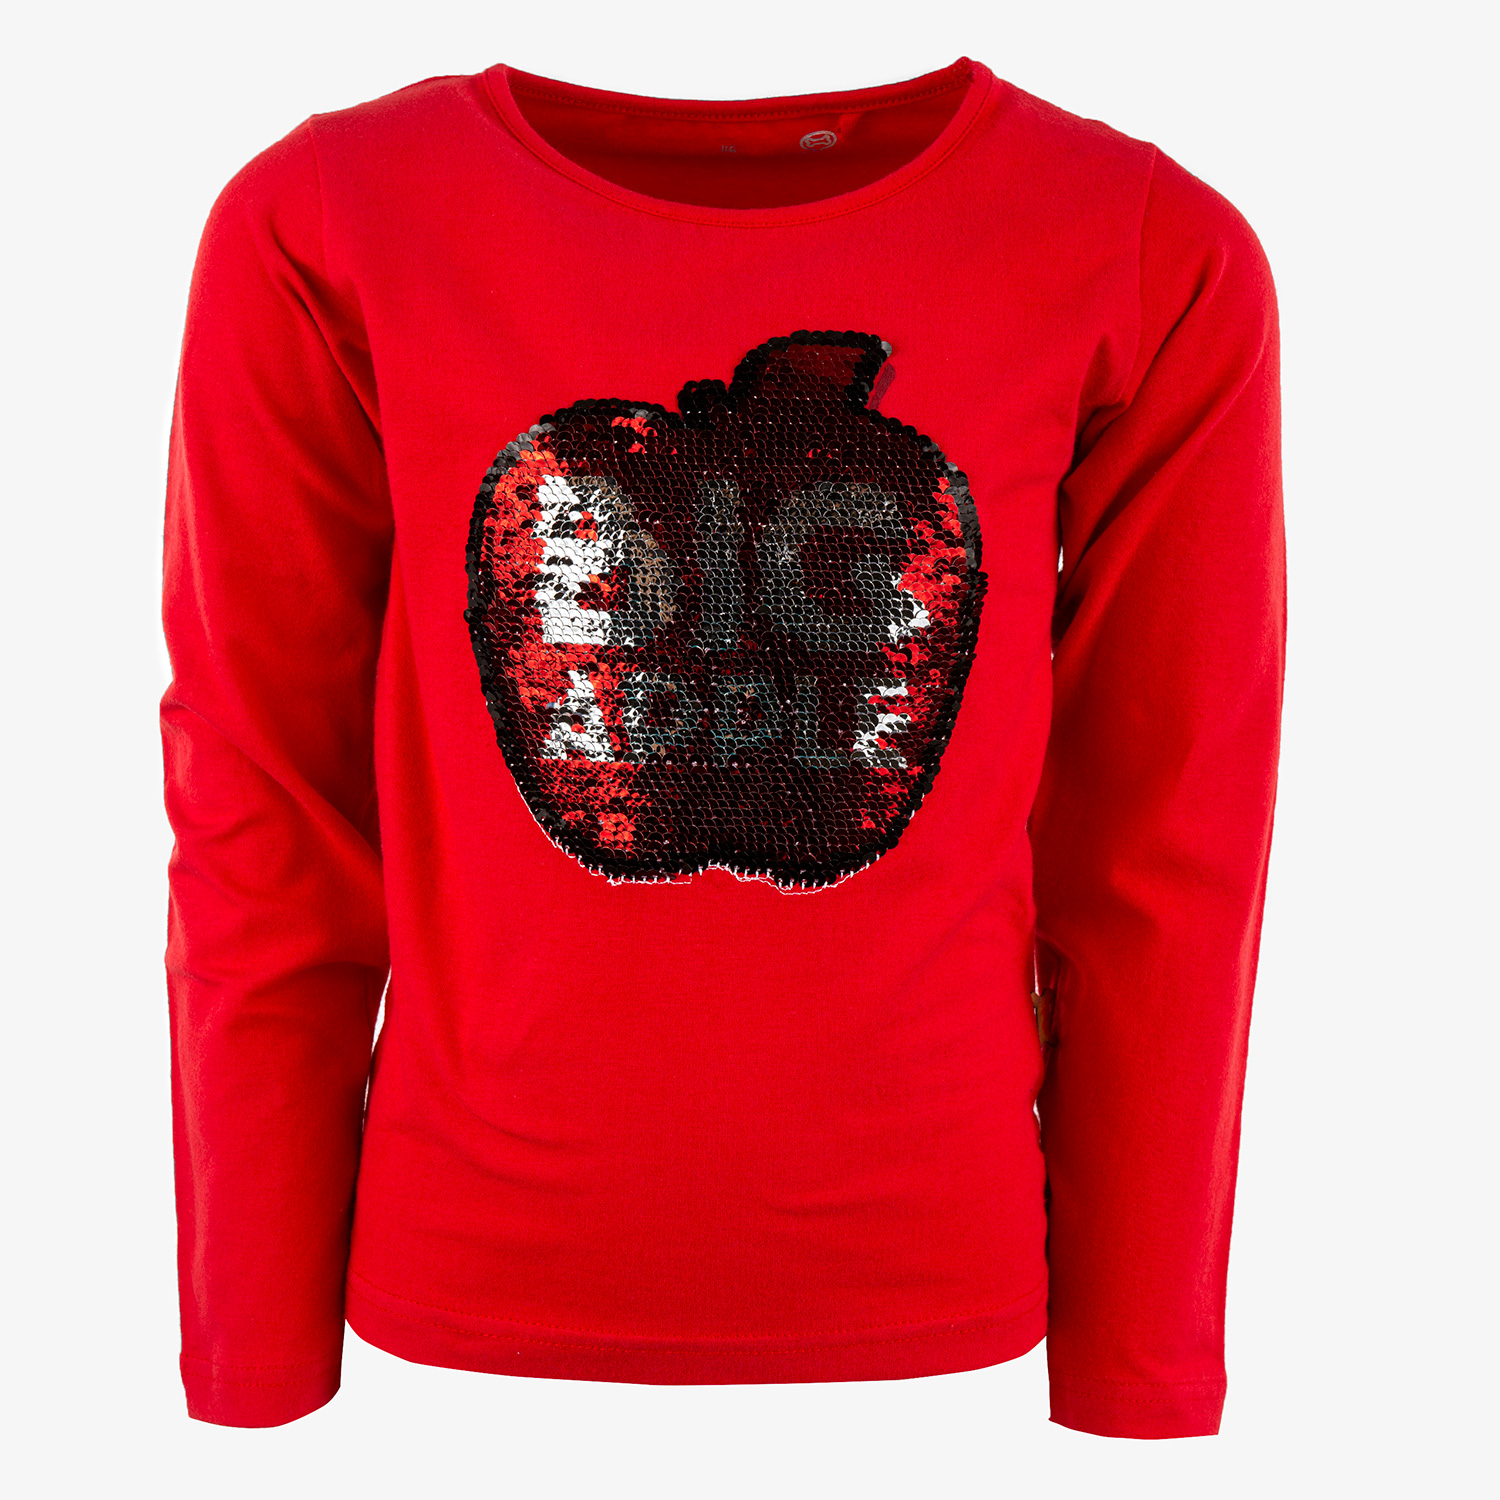 Blissed - BIG APPLE red